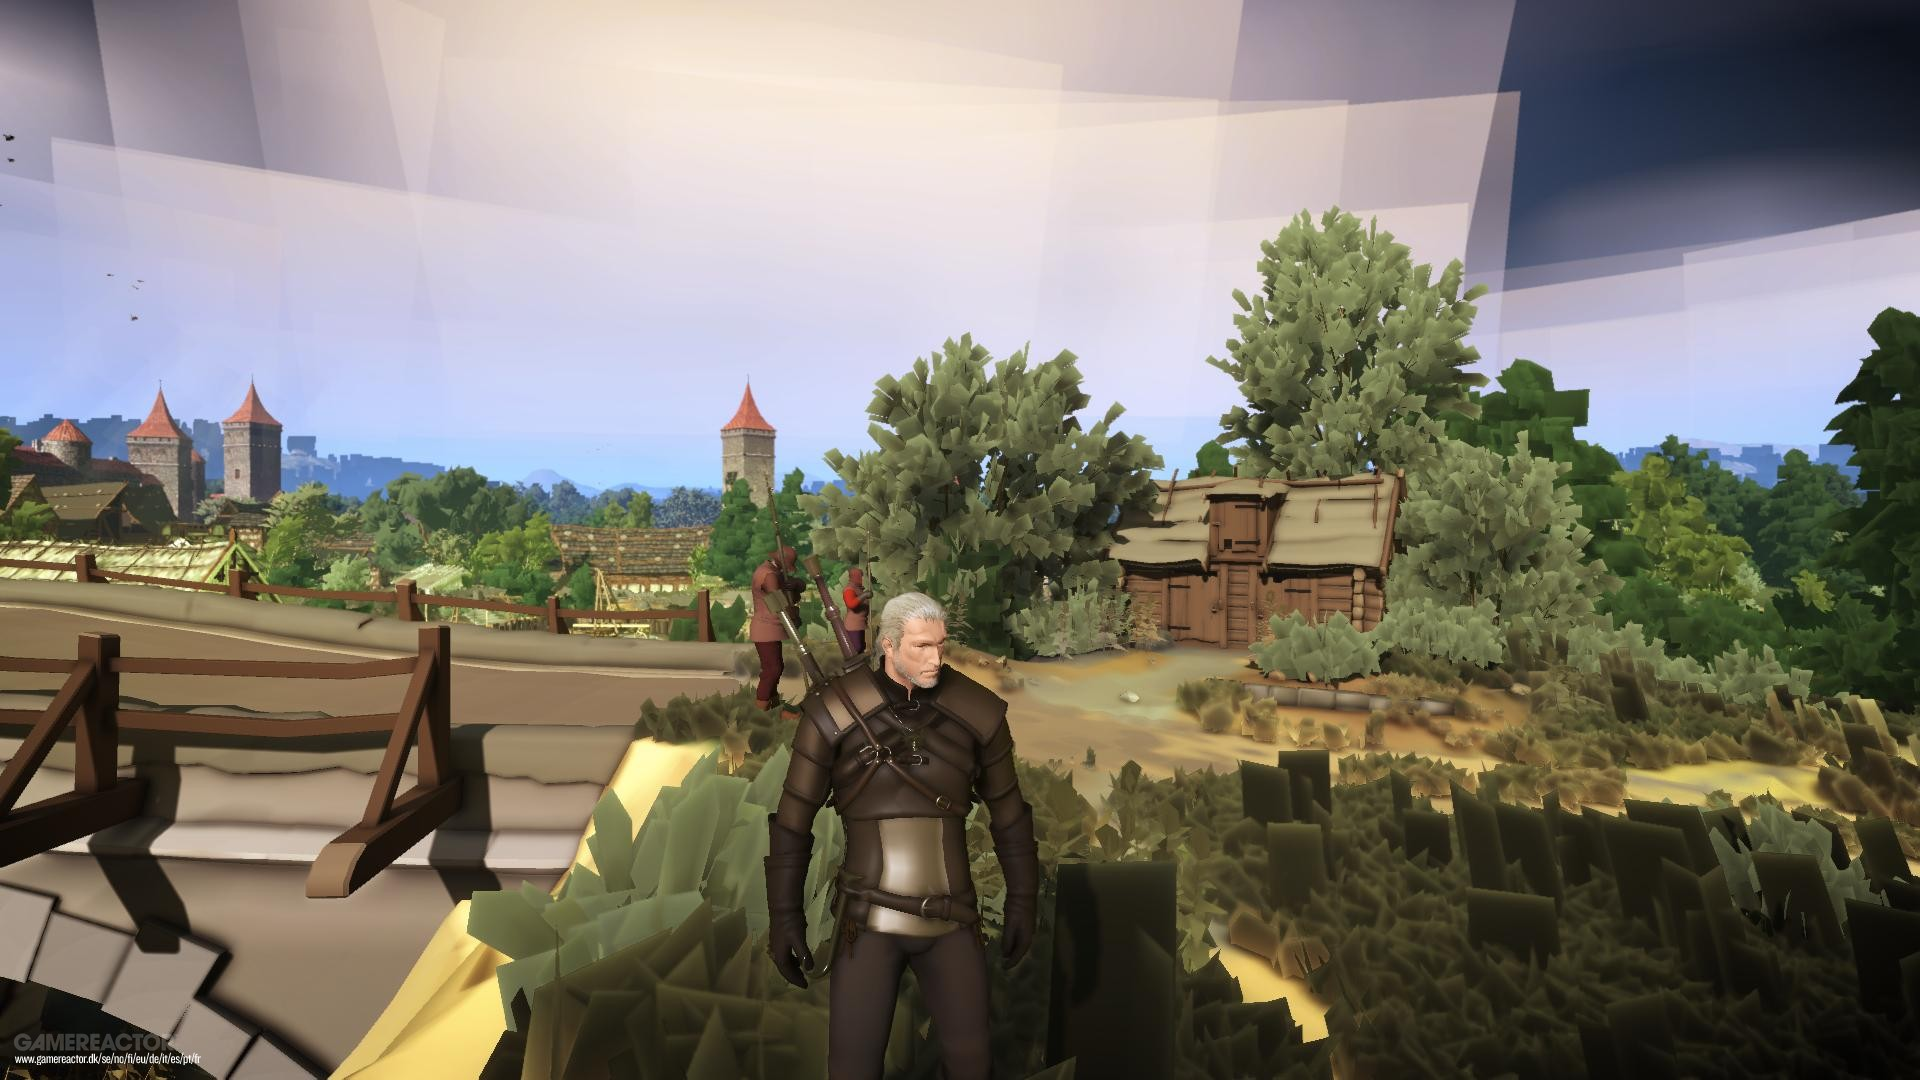 The Witcher 3 with severly downgraded graphics in new mod